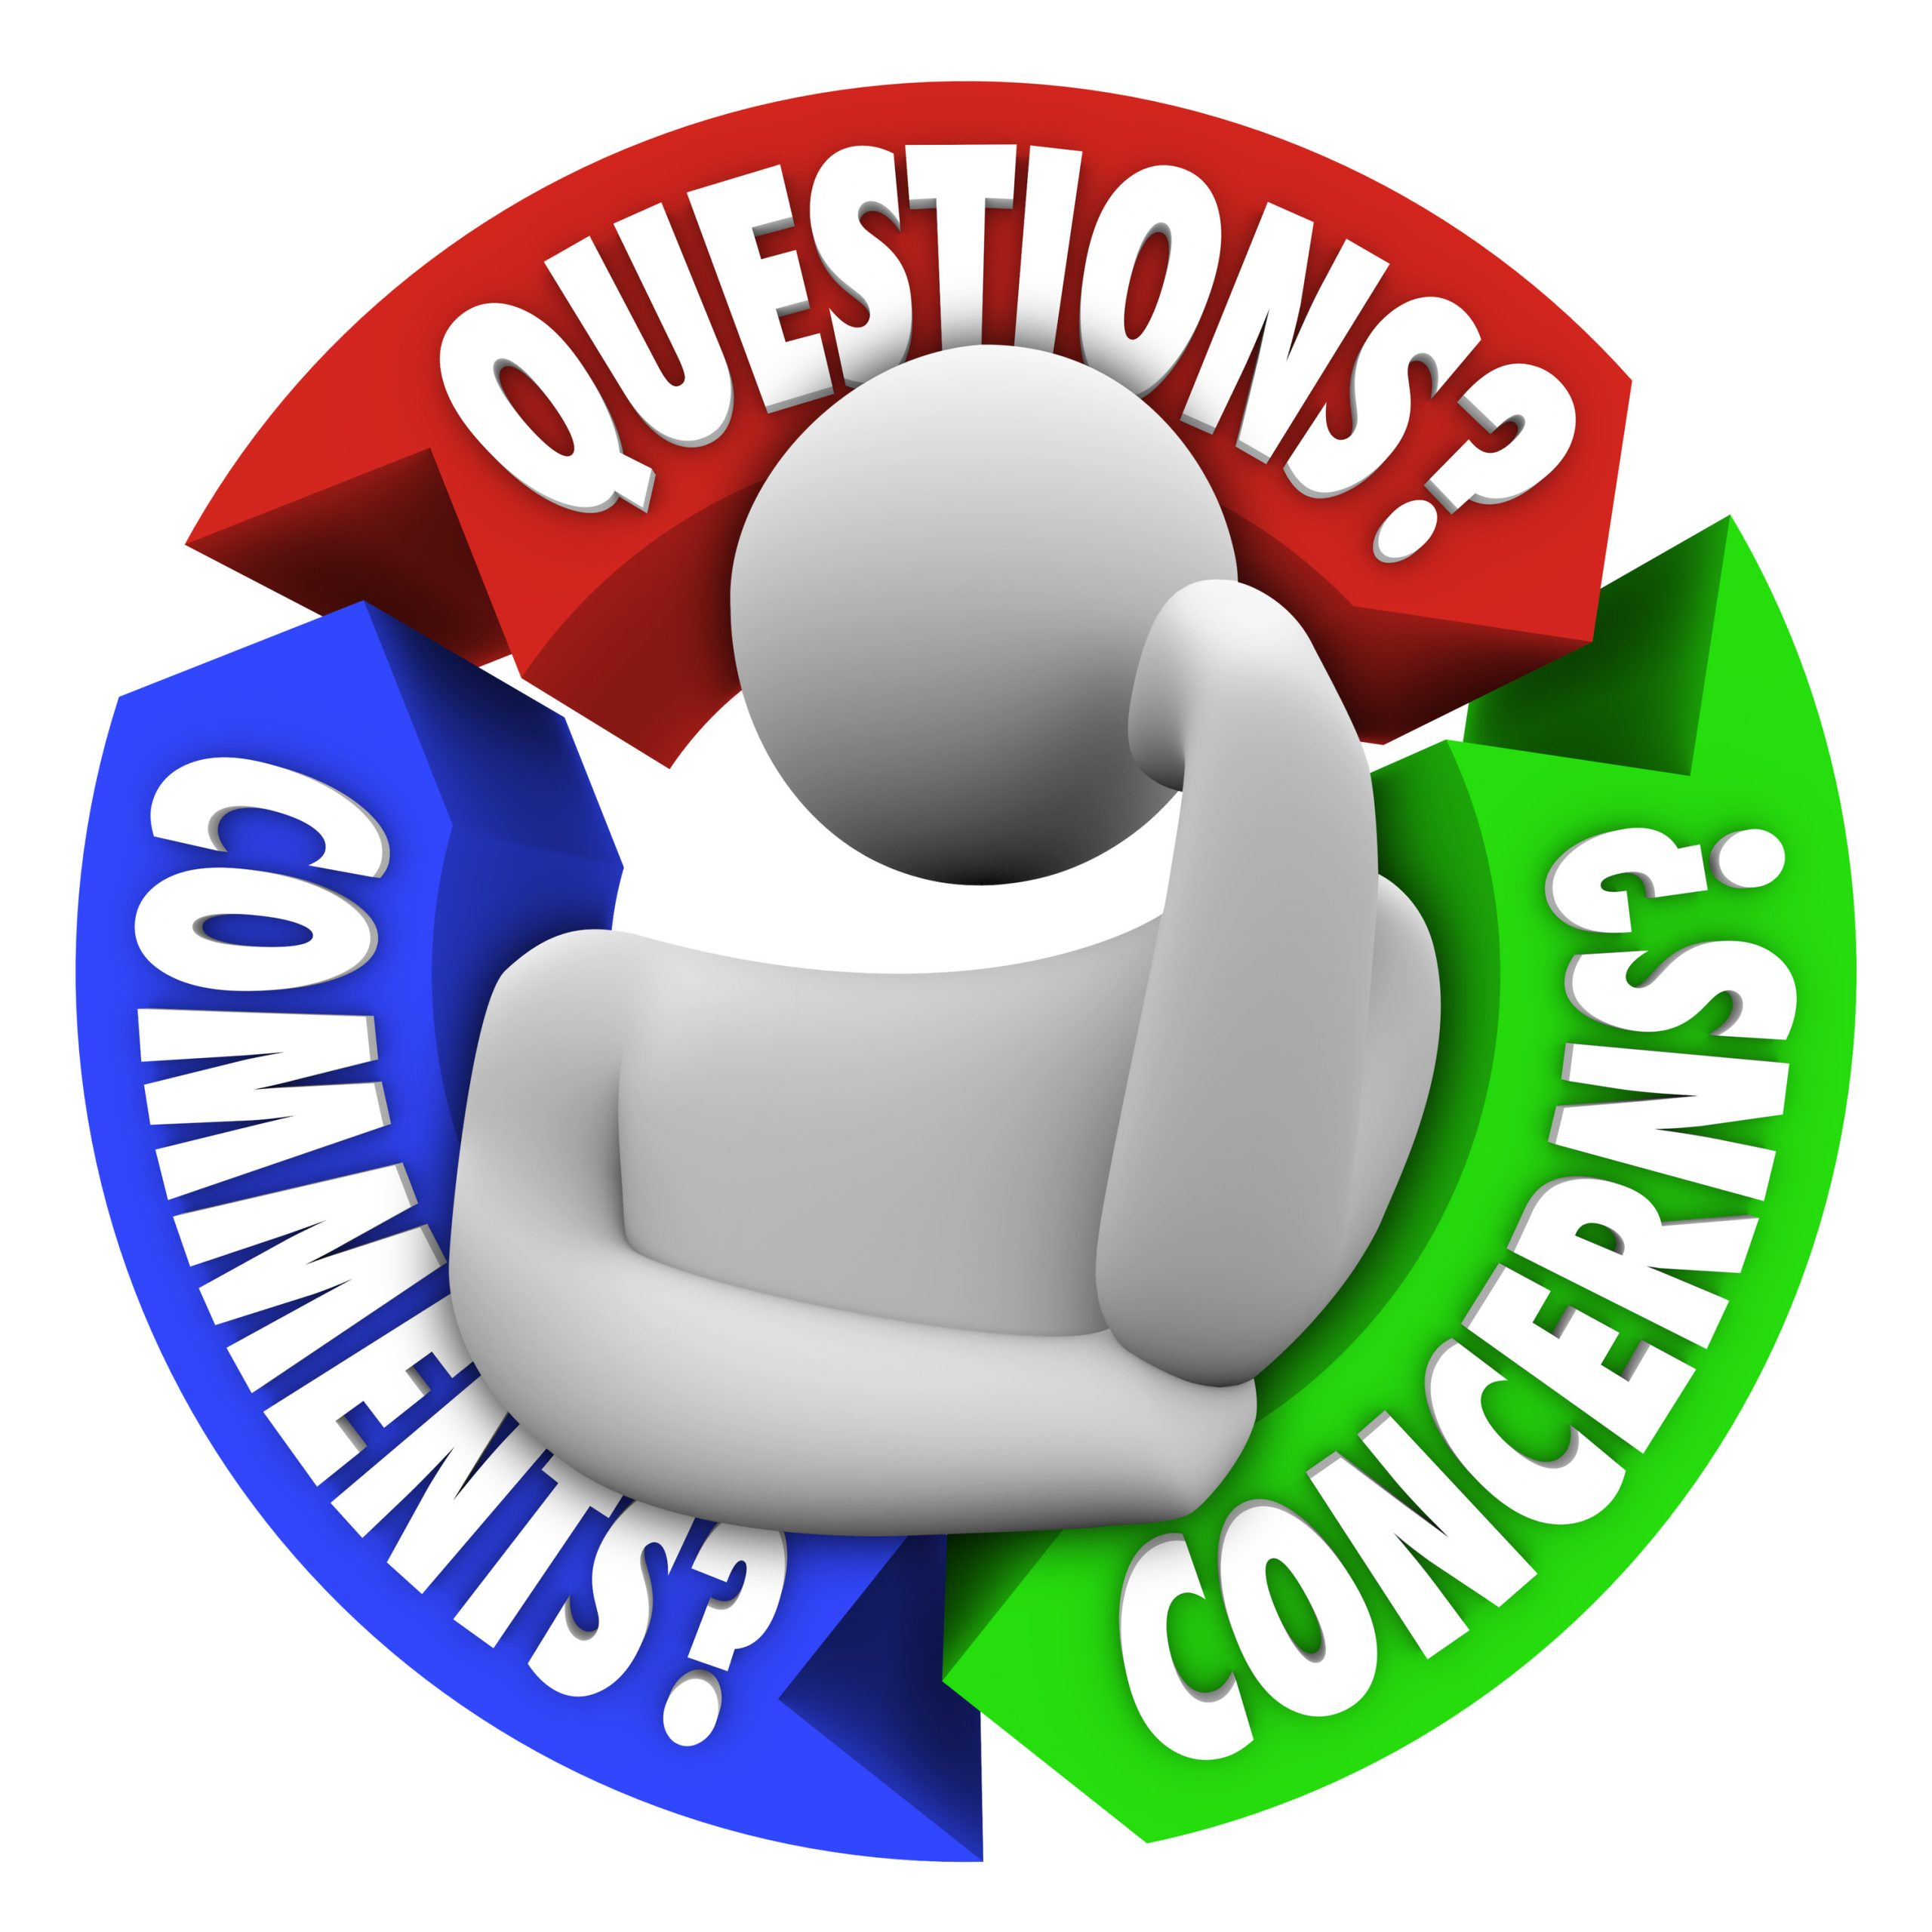 Check out these questions that YOU should be asking in an interview!